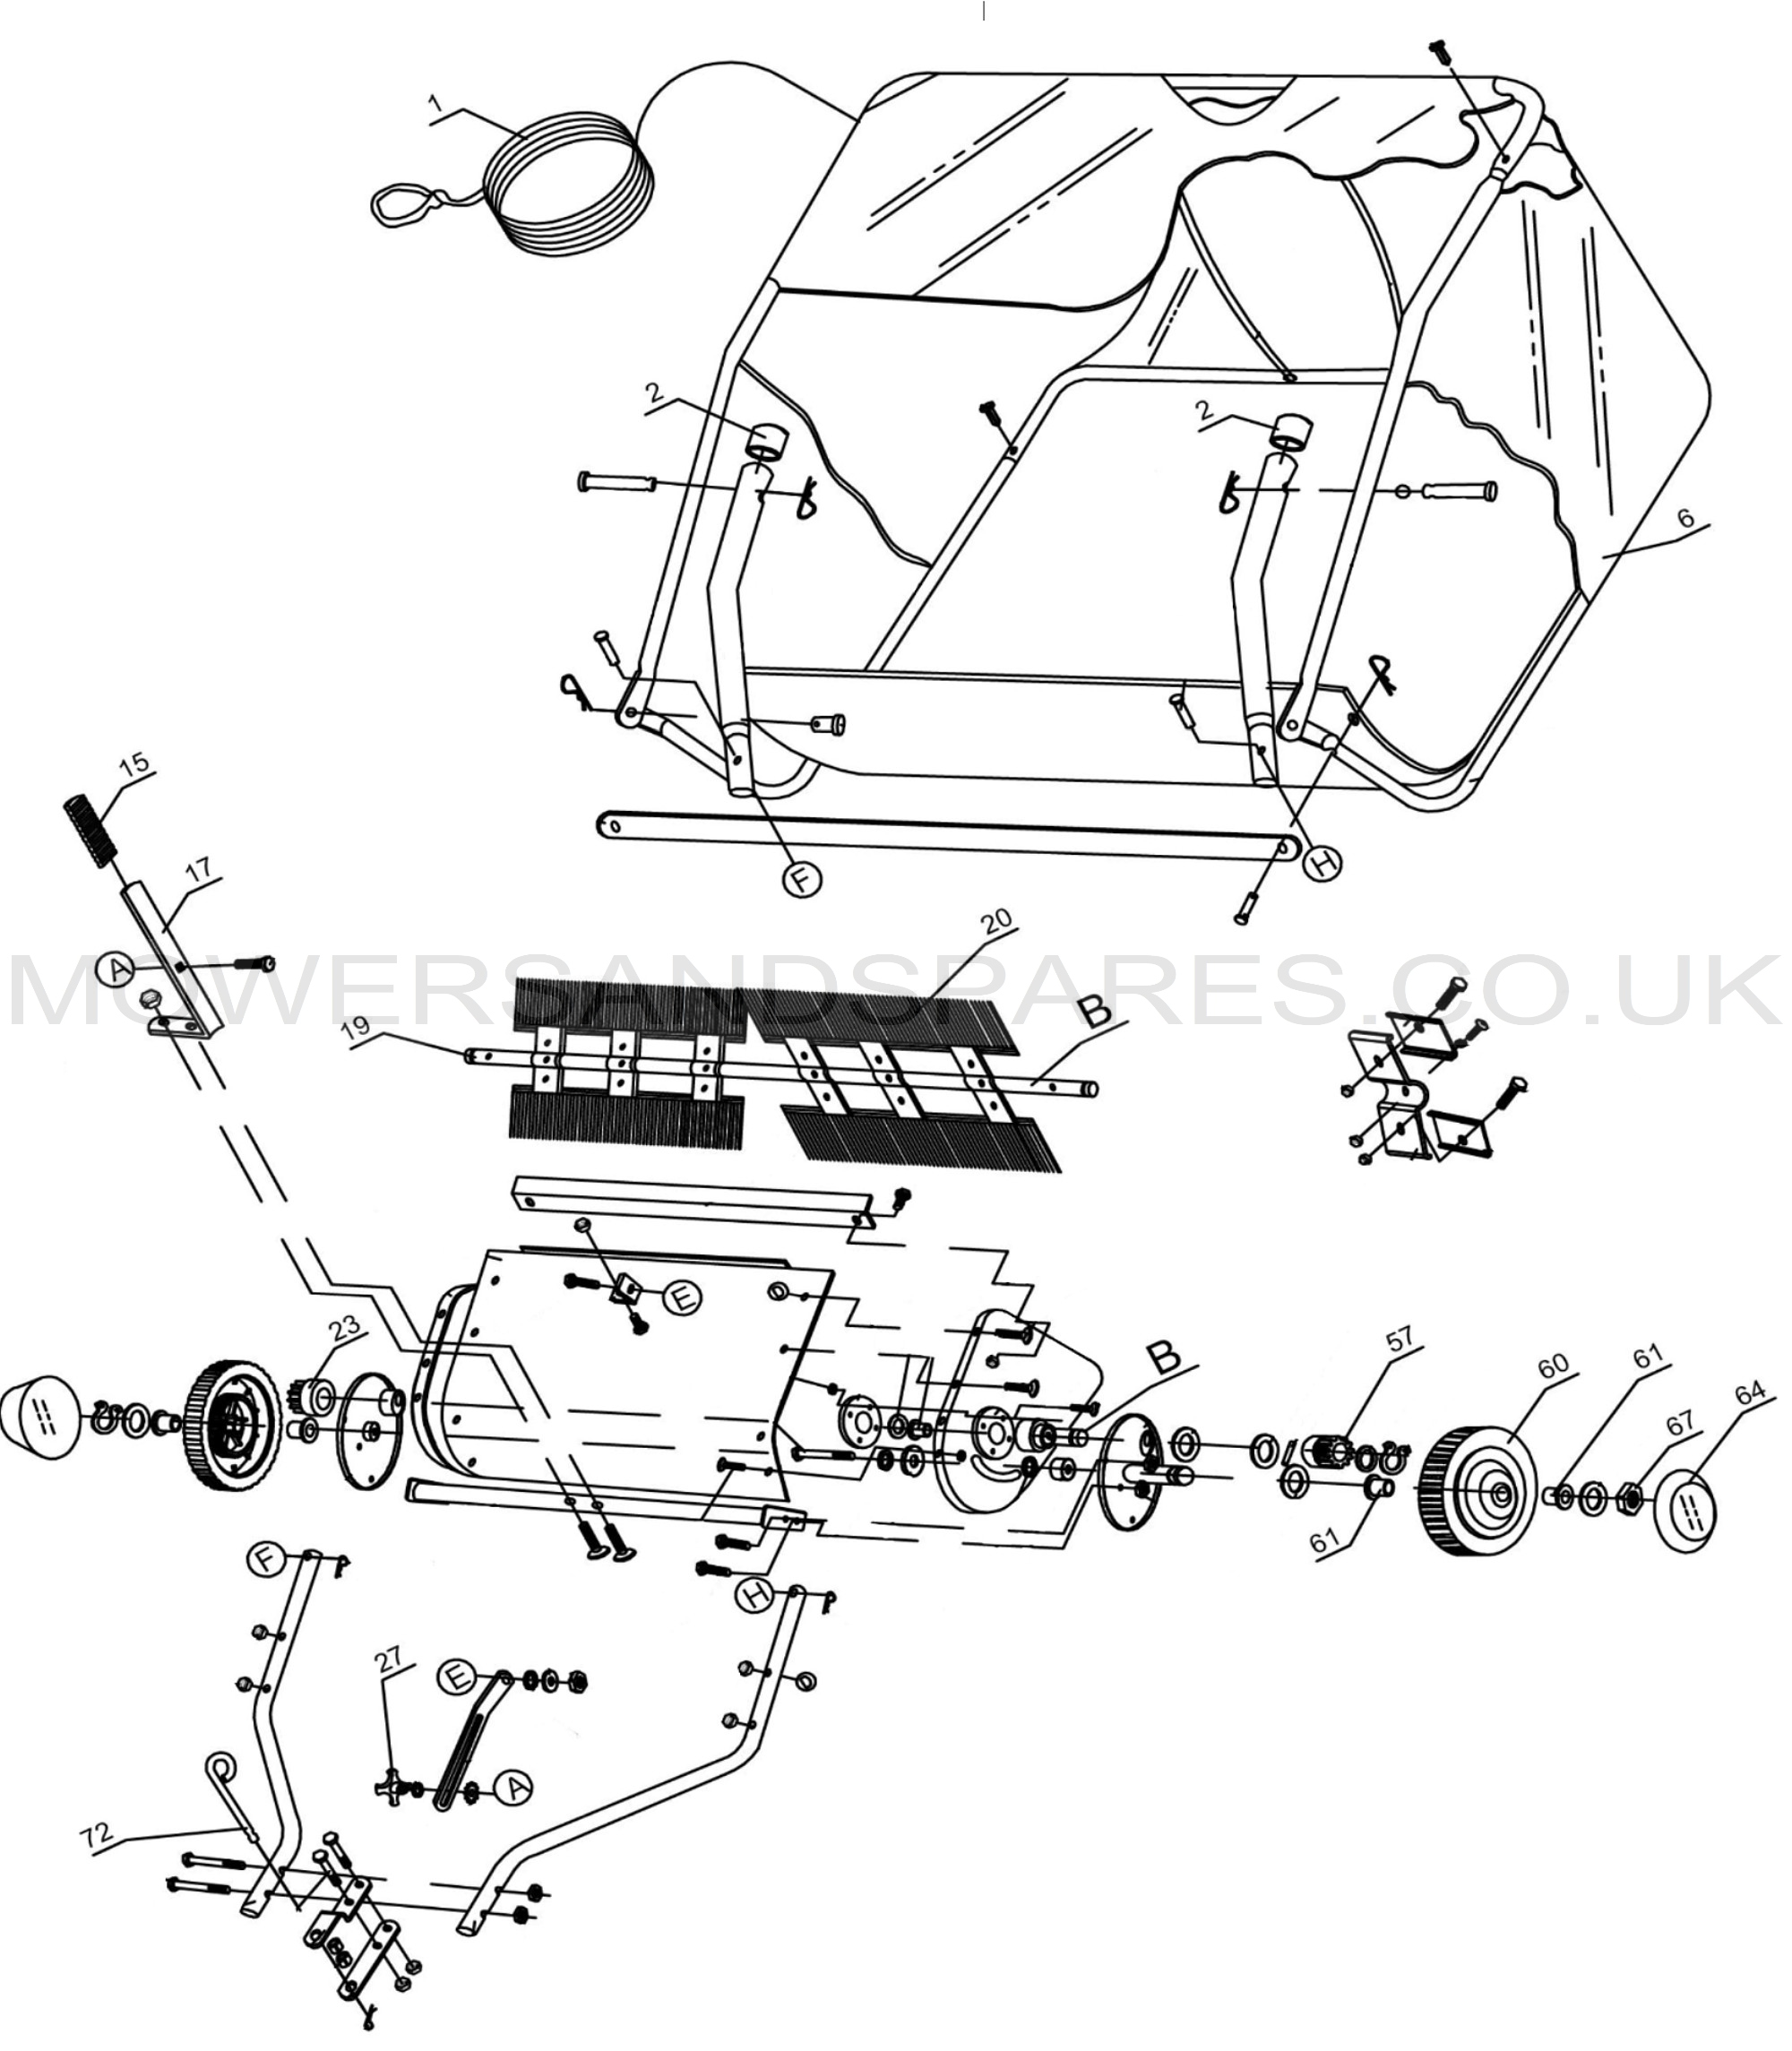 diagram lawn mower sweeper online wiring diagram Lawn Sweepers at Home Depot cobra tls97 sweeper spare parts mowers \u0026 spares diagram lawn mower sweeper